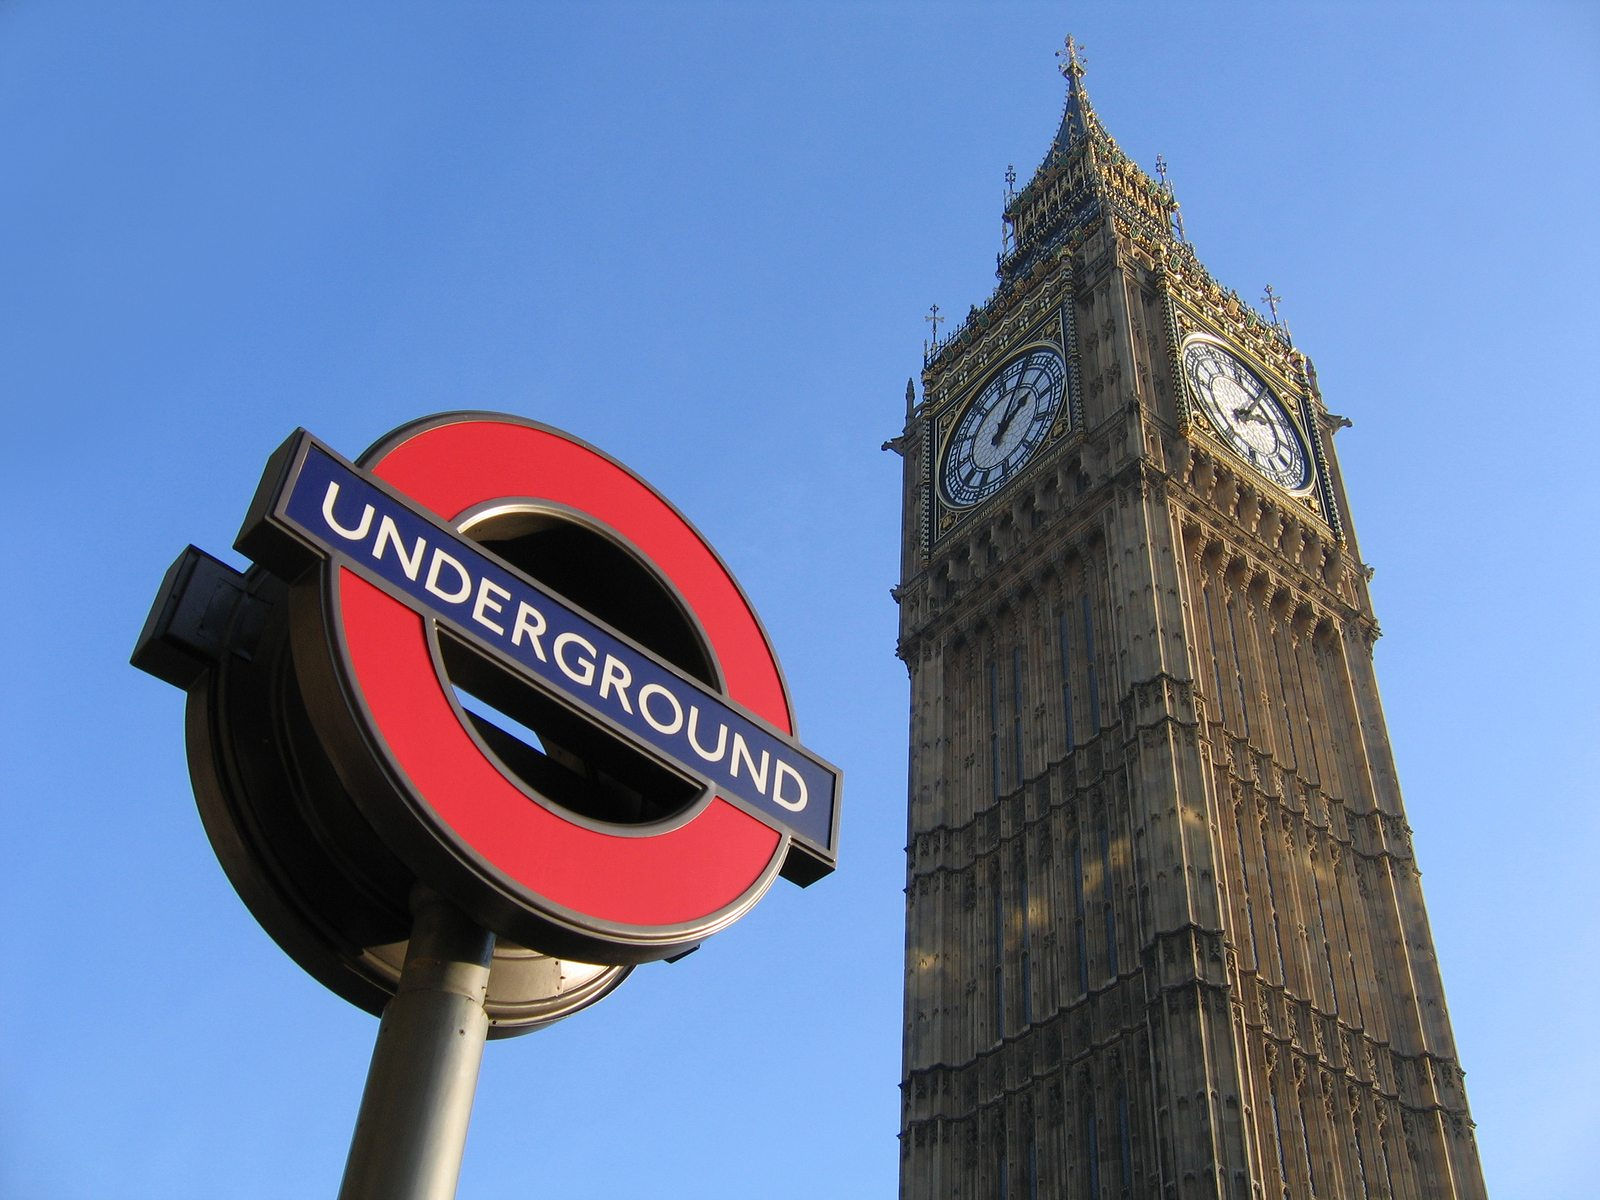 big ben by the houses of parliament in london and the underground., famous signs